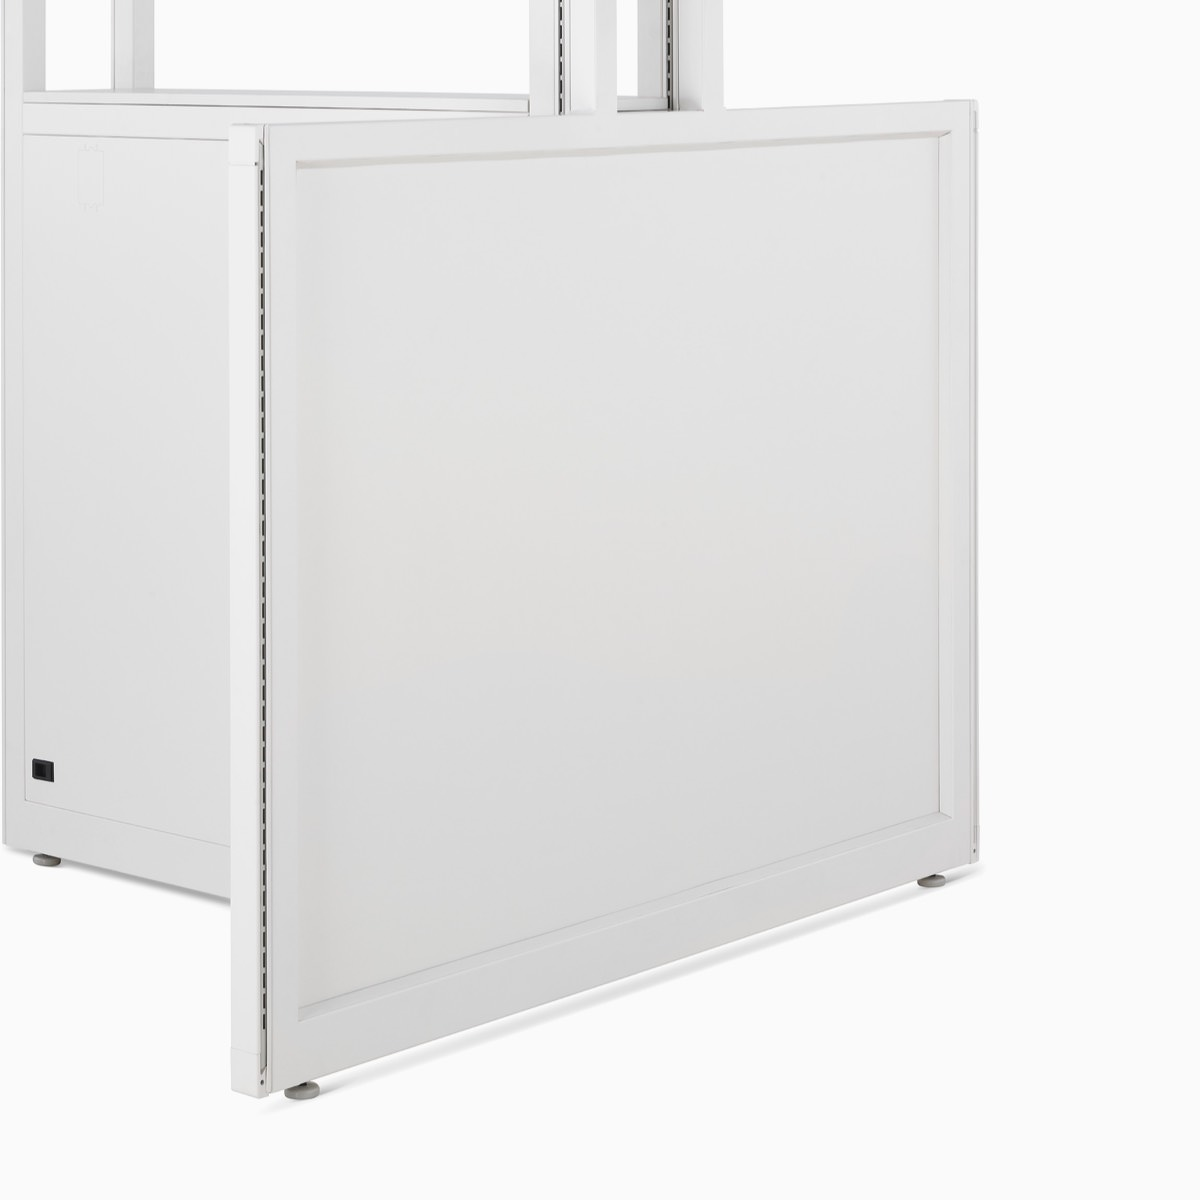 Detail of Co/Struc System frame and panel in soft white.